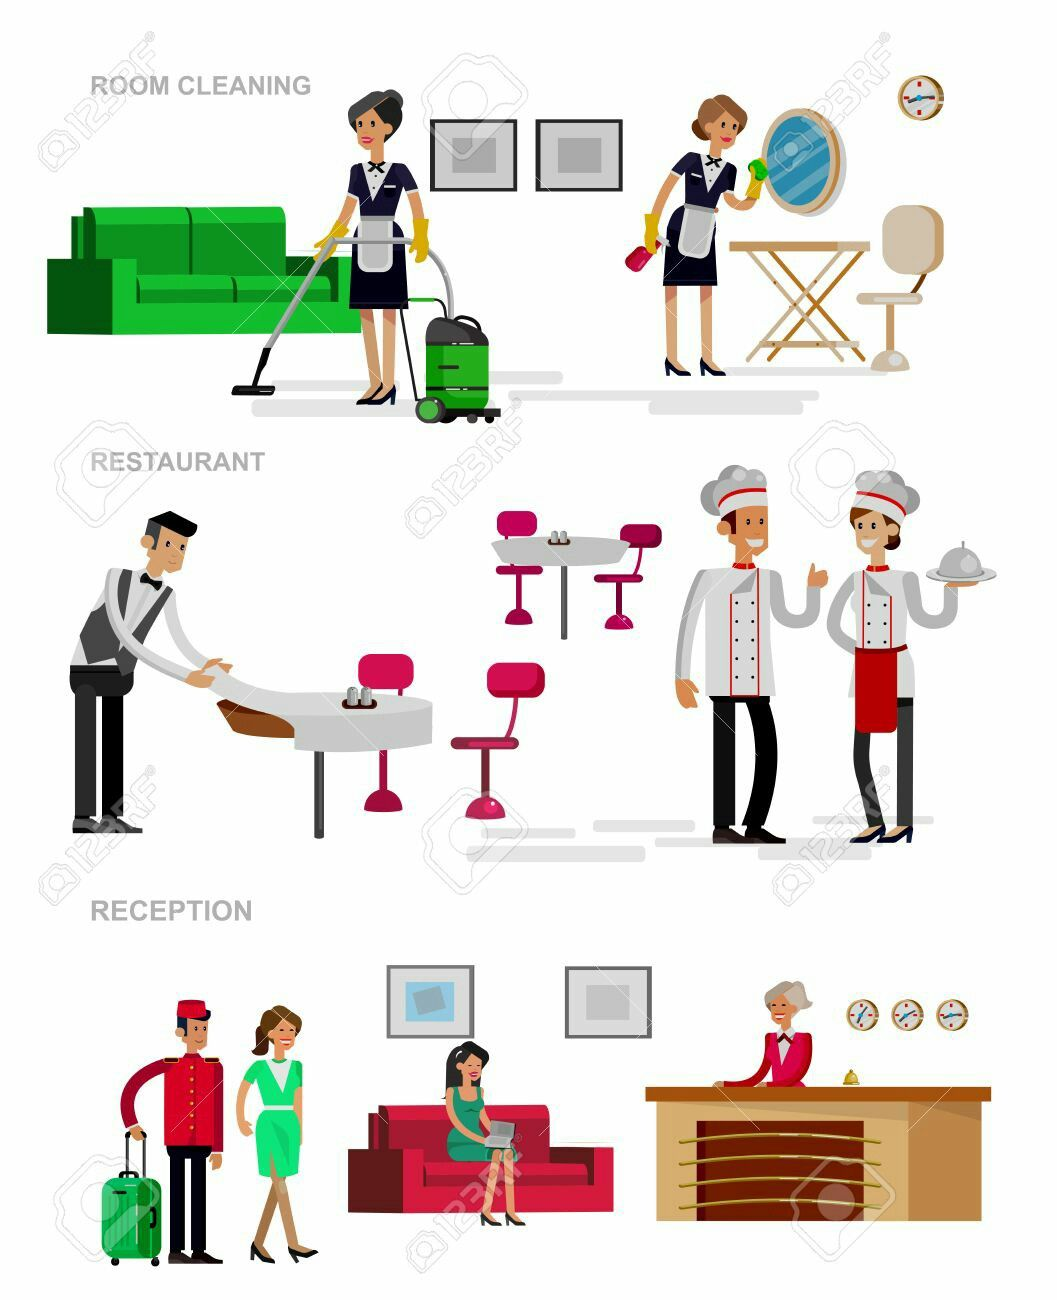 Hotel Housekeeping Services: Pin By Predrag N. On Hotel Management